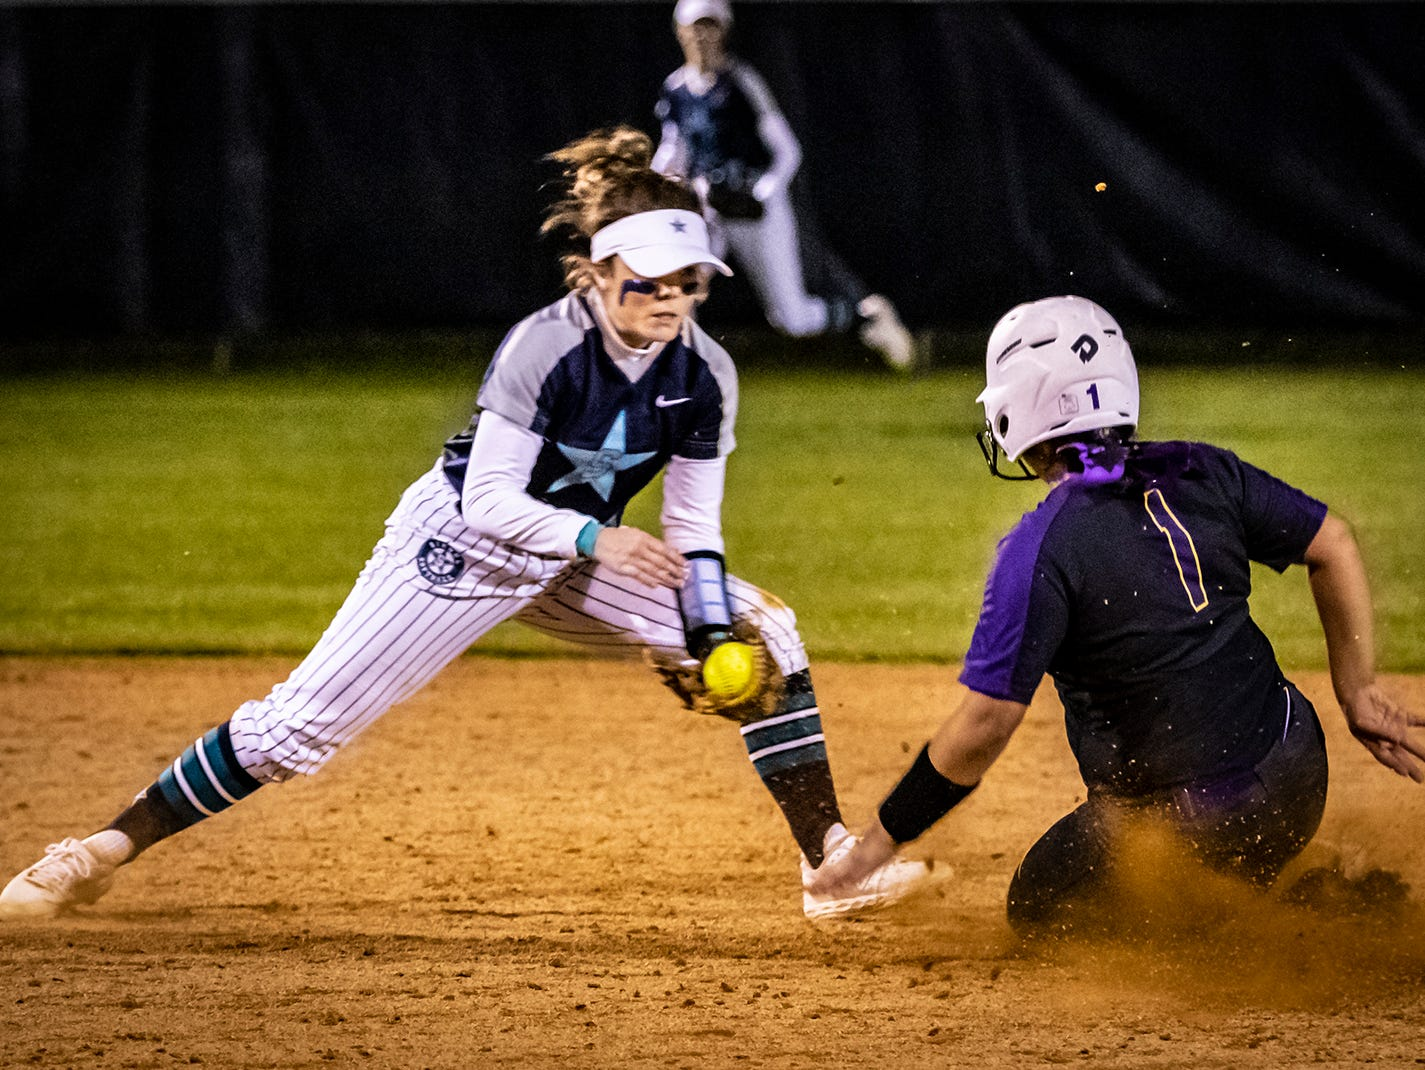 Siegel shortstop Vanessa Westfall tags out Smyrna's Ashlynn Dimmick trying to advance to second.